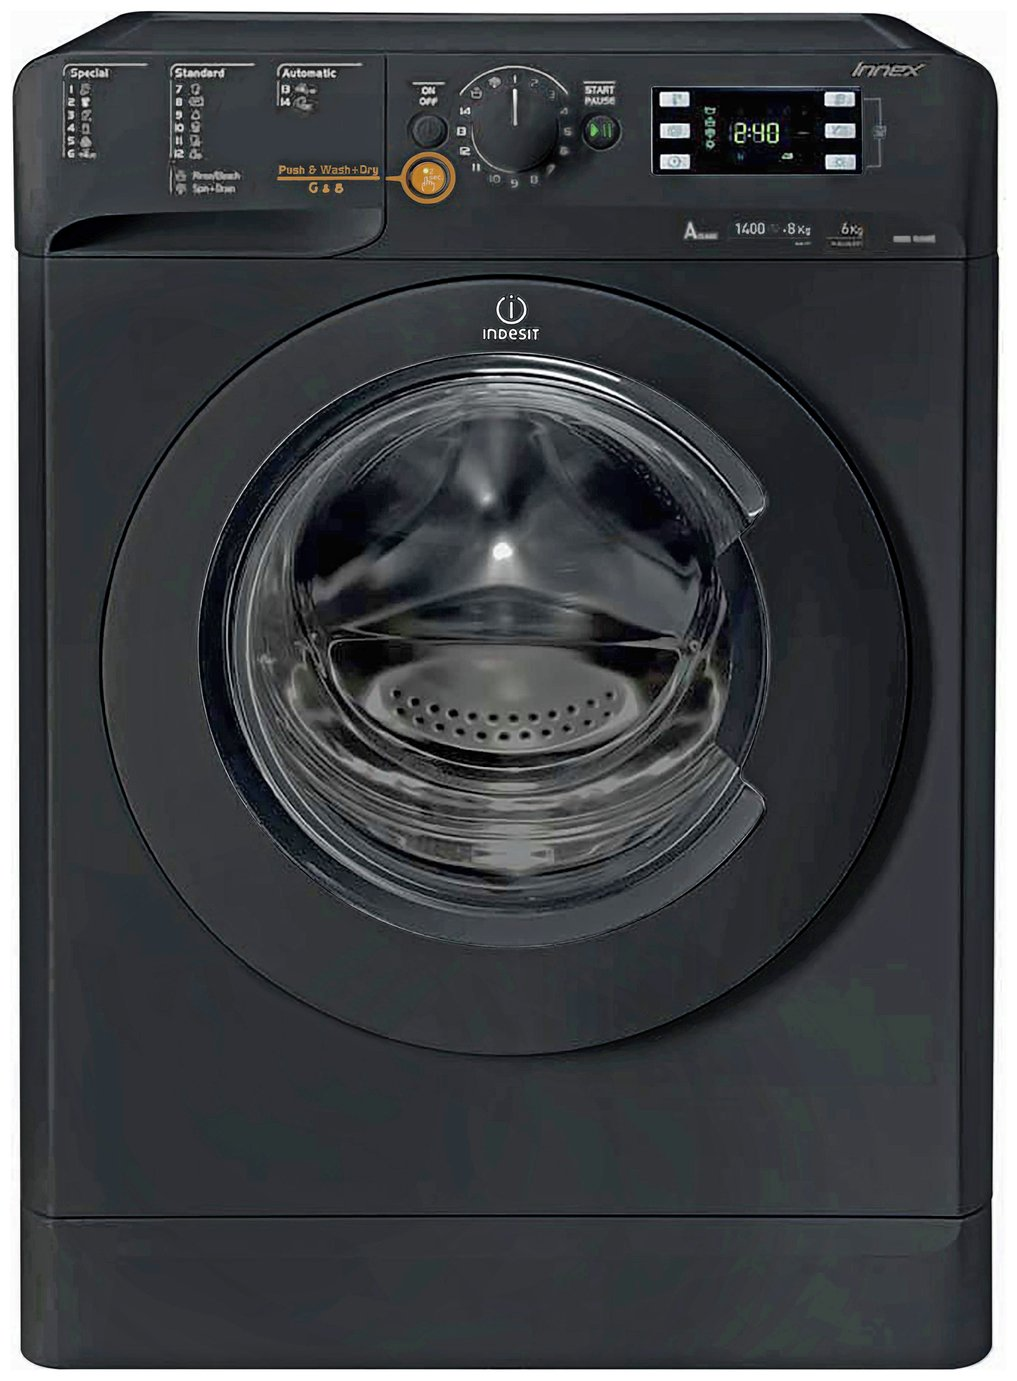 Indesit XWDE751480XK 7KG/5KG 1400 Spin Washer Dryer - Black